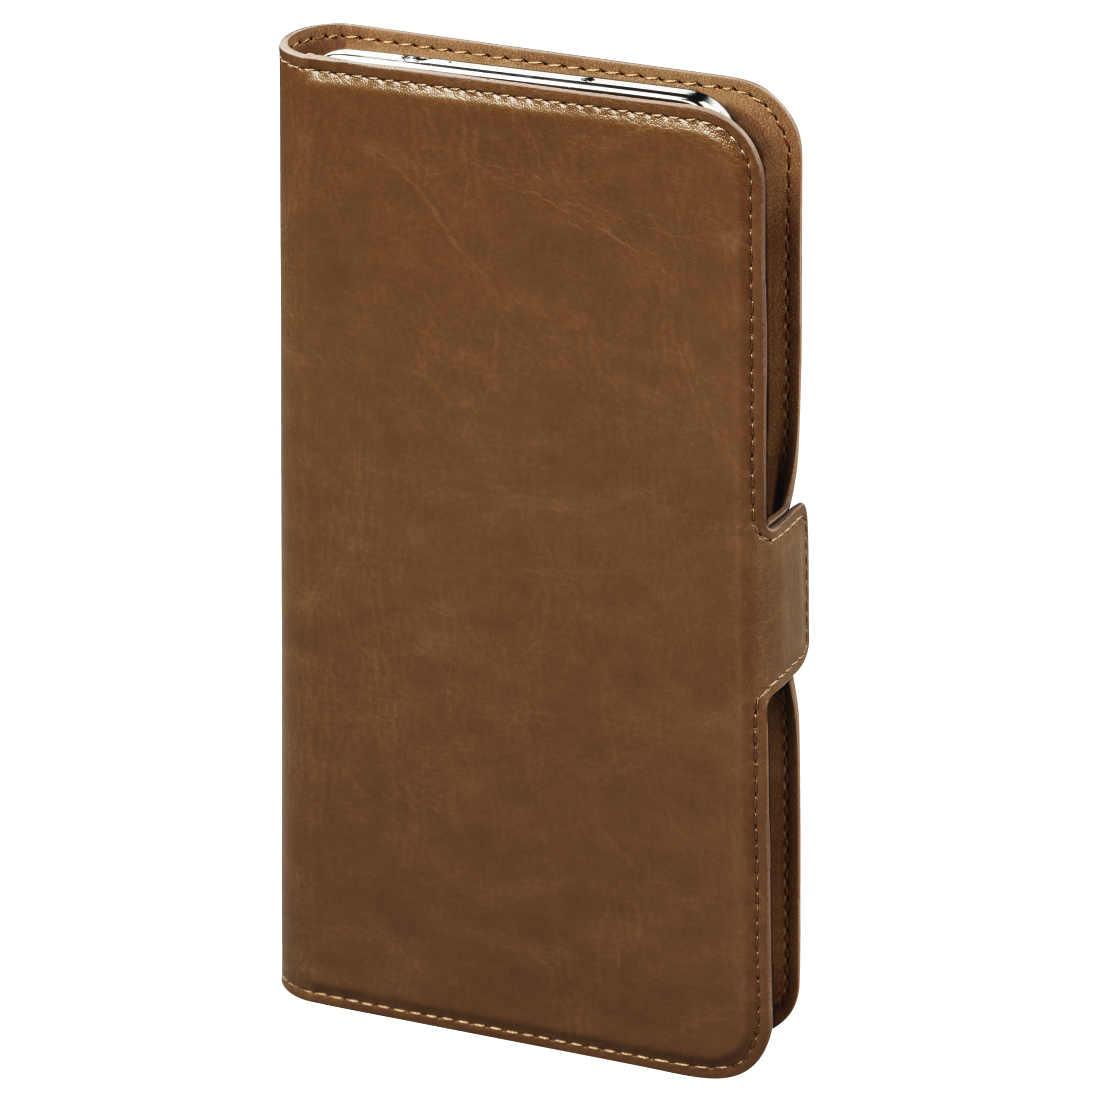 abx2 High-Res Image 2 - Hama, Smart Move Booklet Case, size XXL (5.2 - 5.8), brown